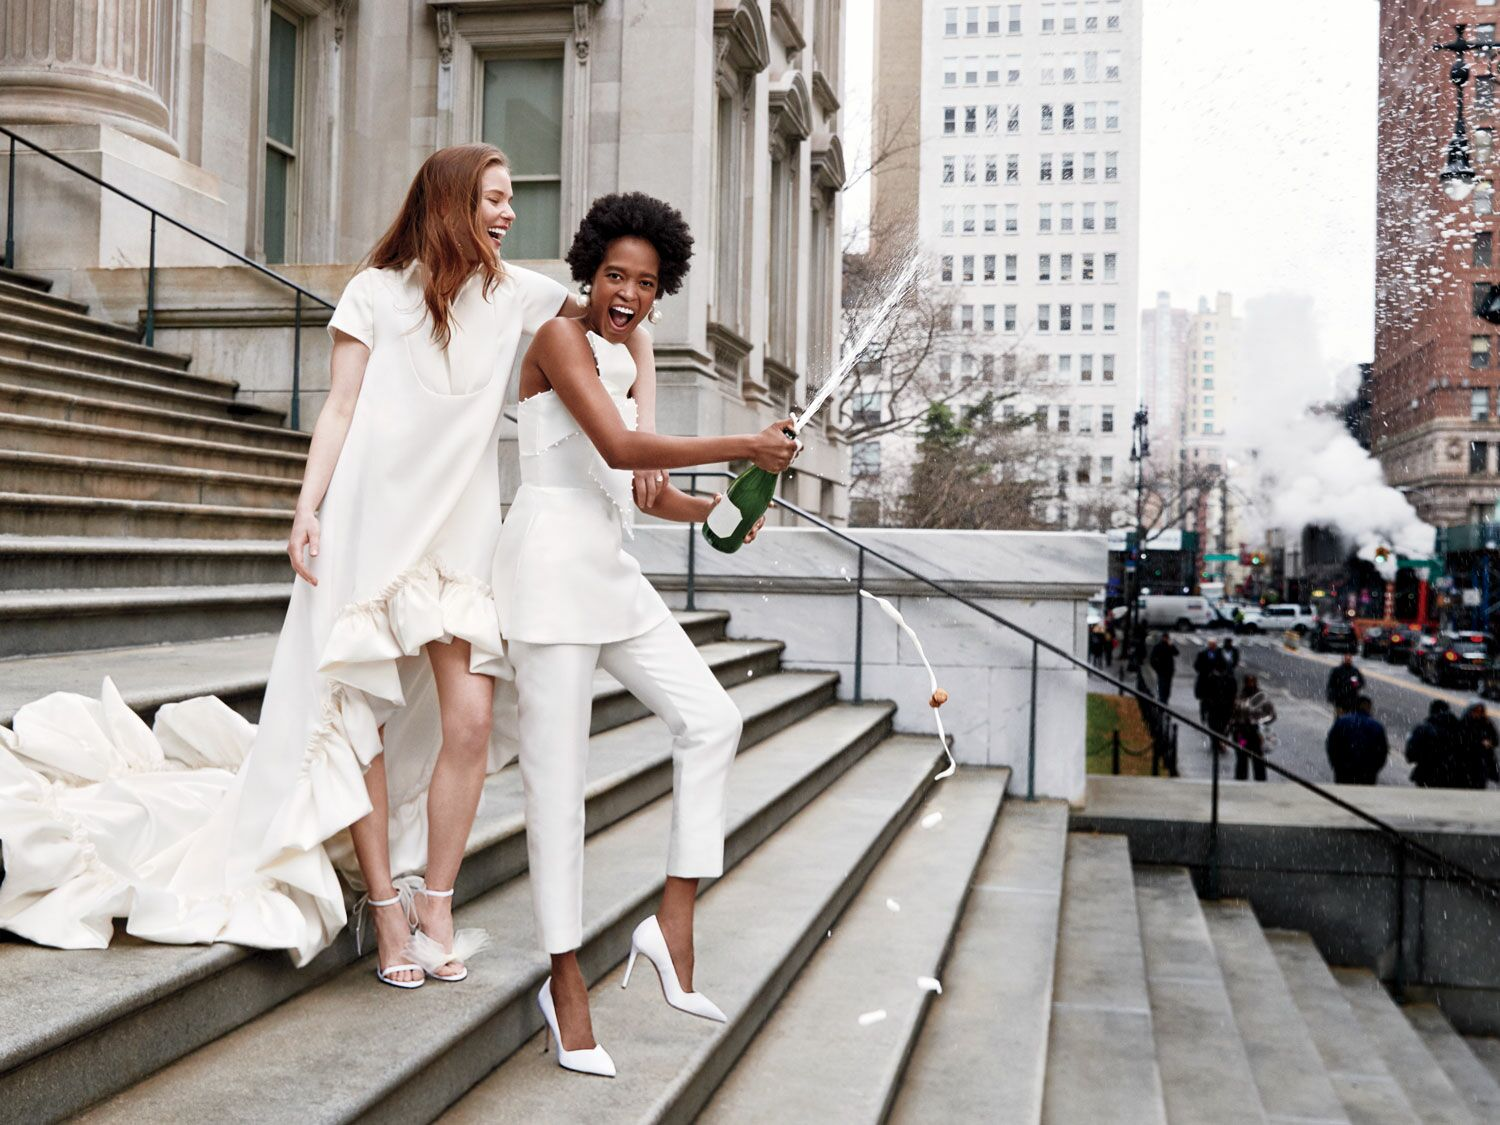 25 Chic Courthouse Wedding Dresses To Make It Official